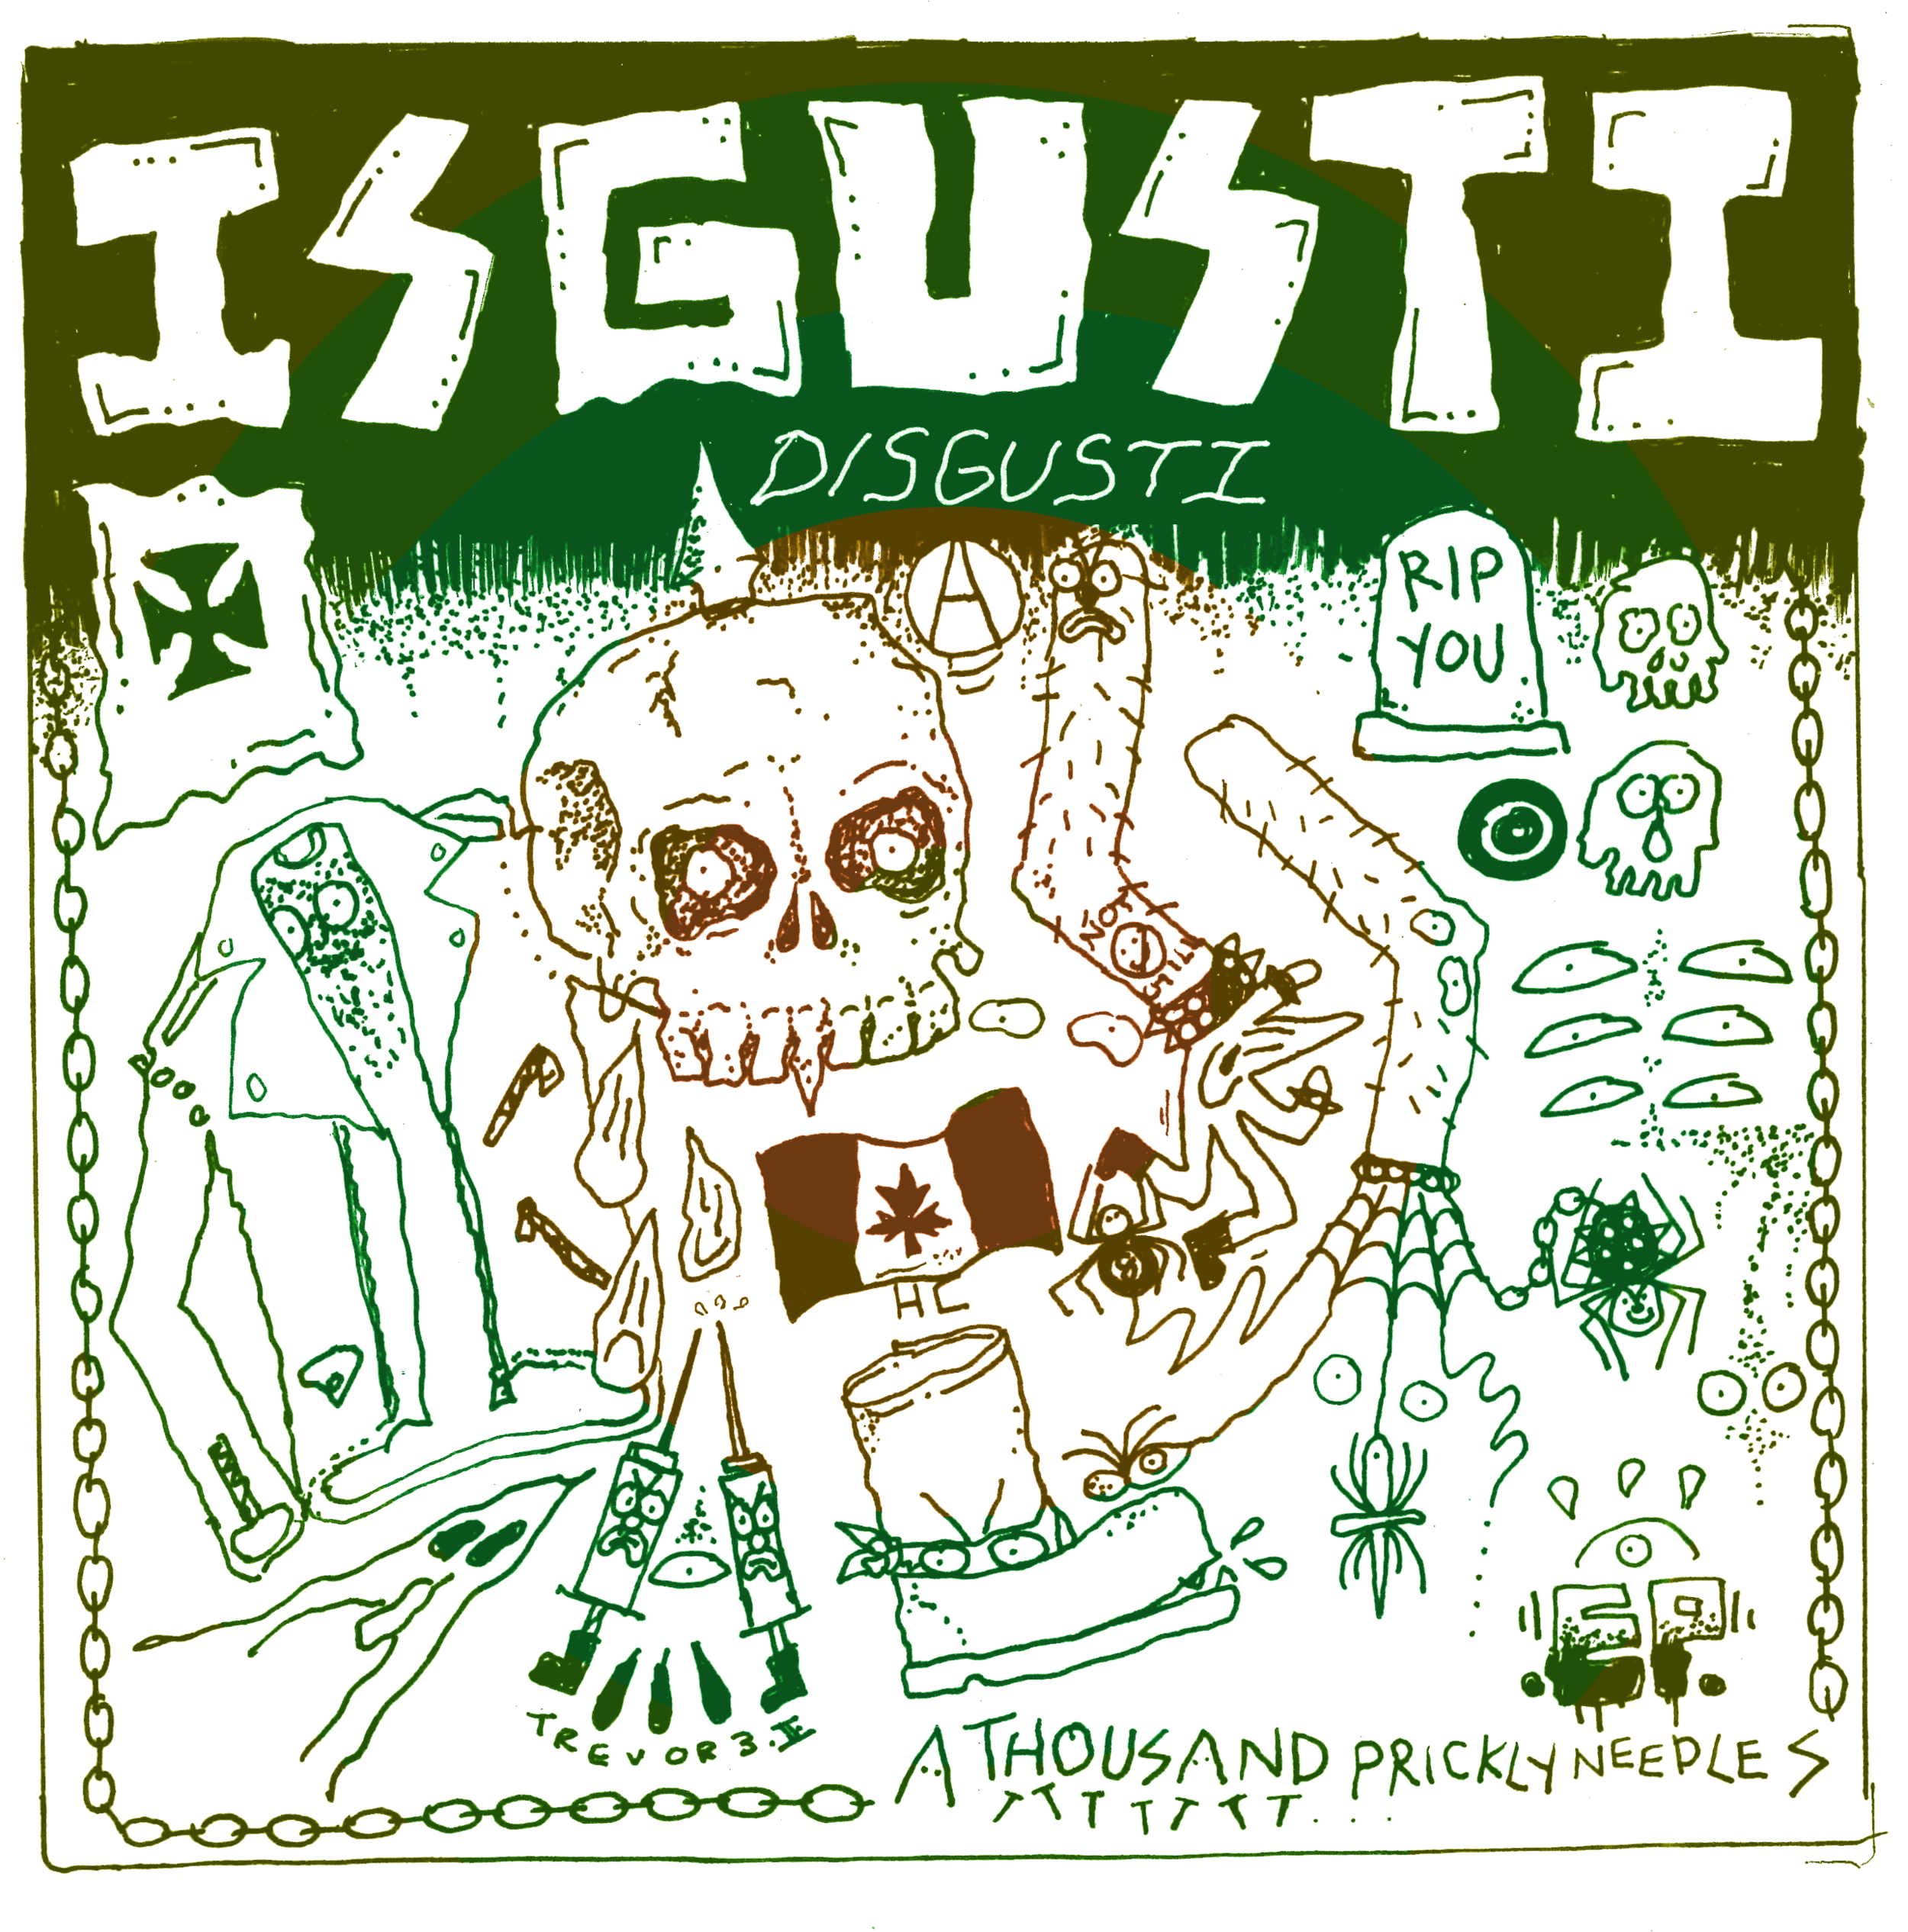 - Disgusti - A Thousand Prickly Needles EPHFI - 007